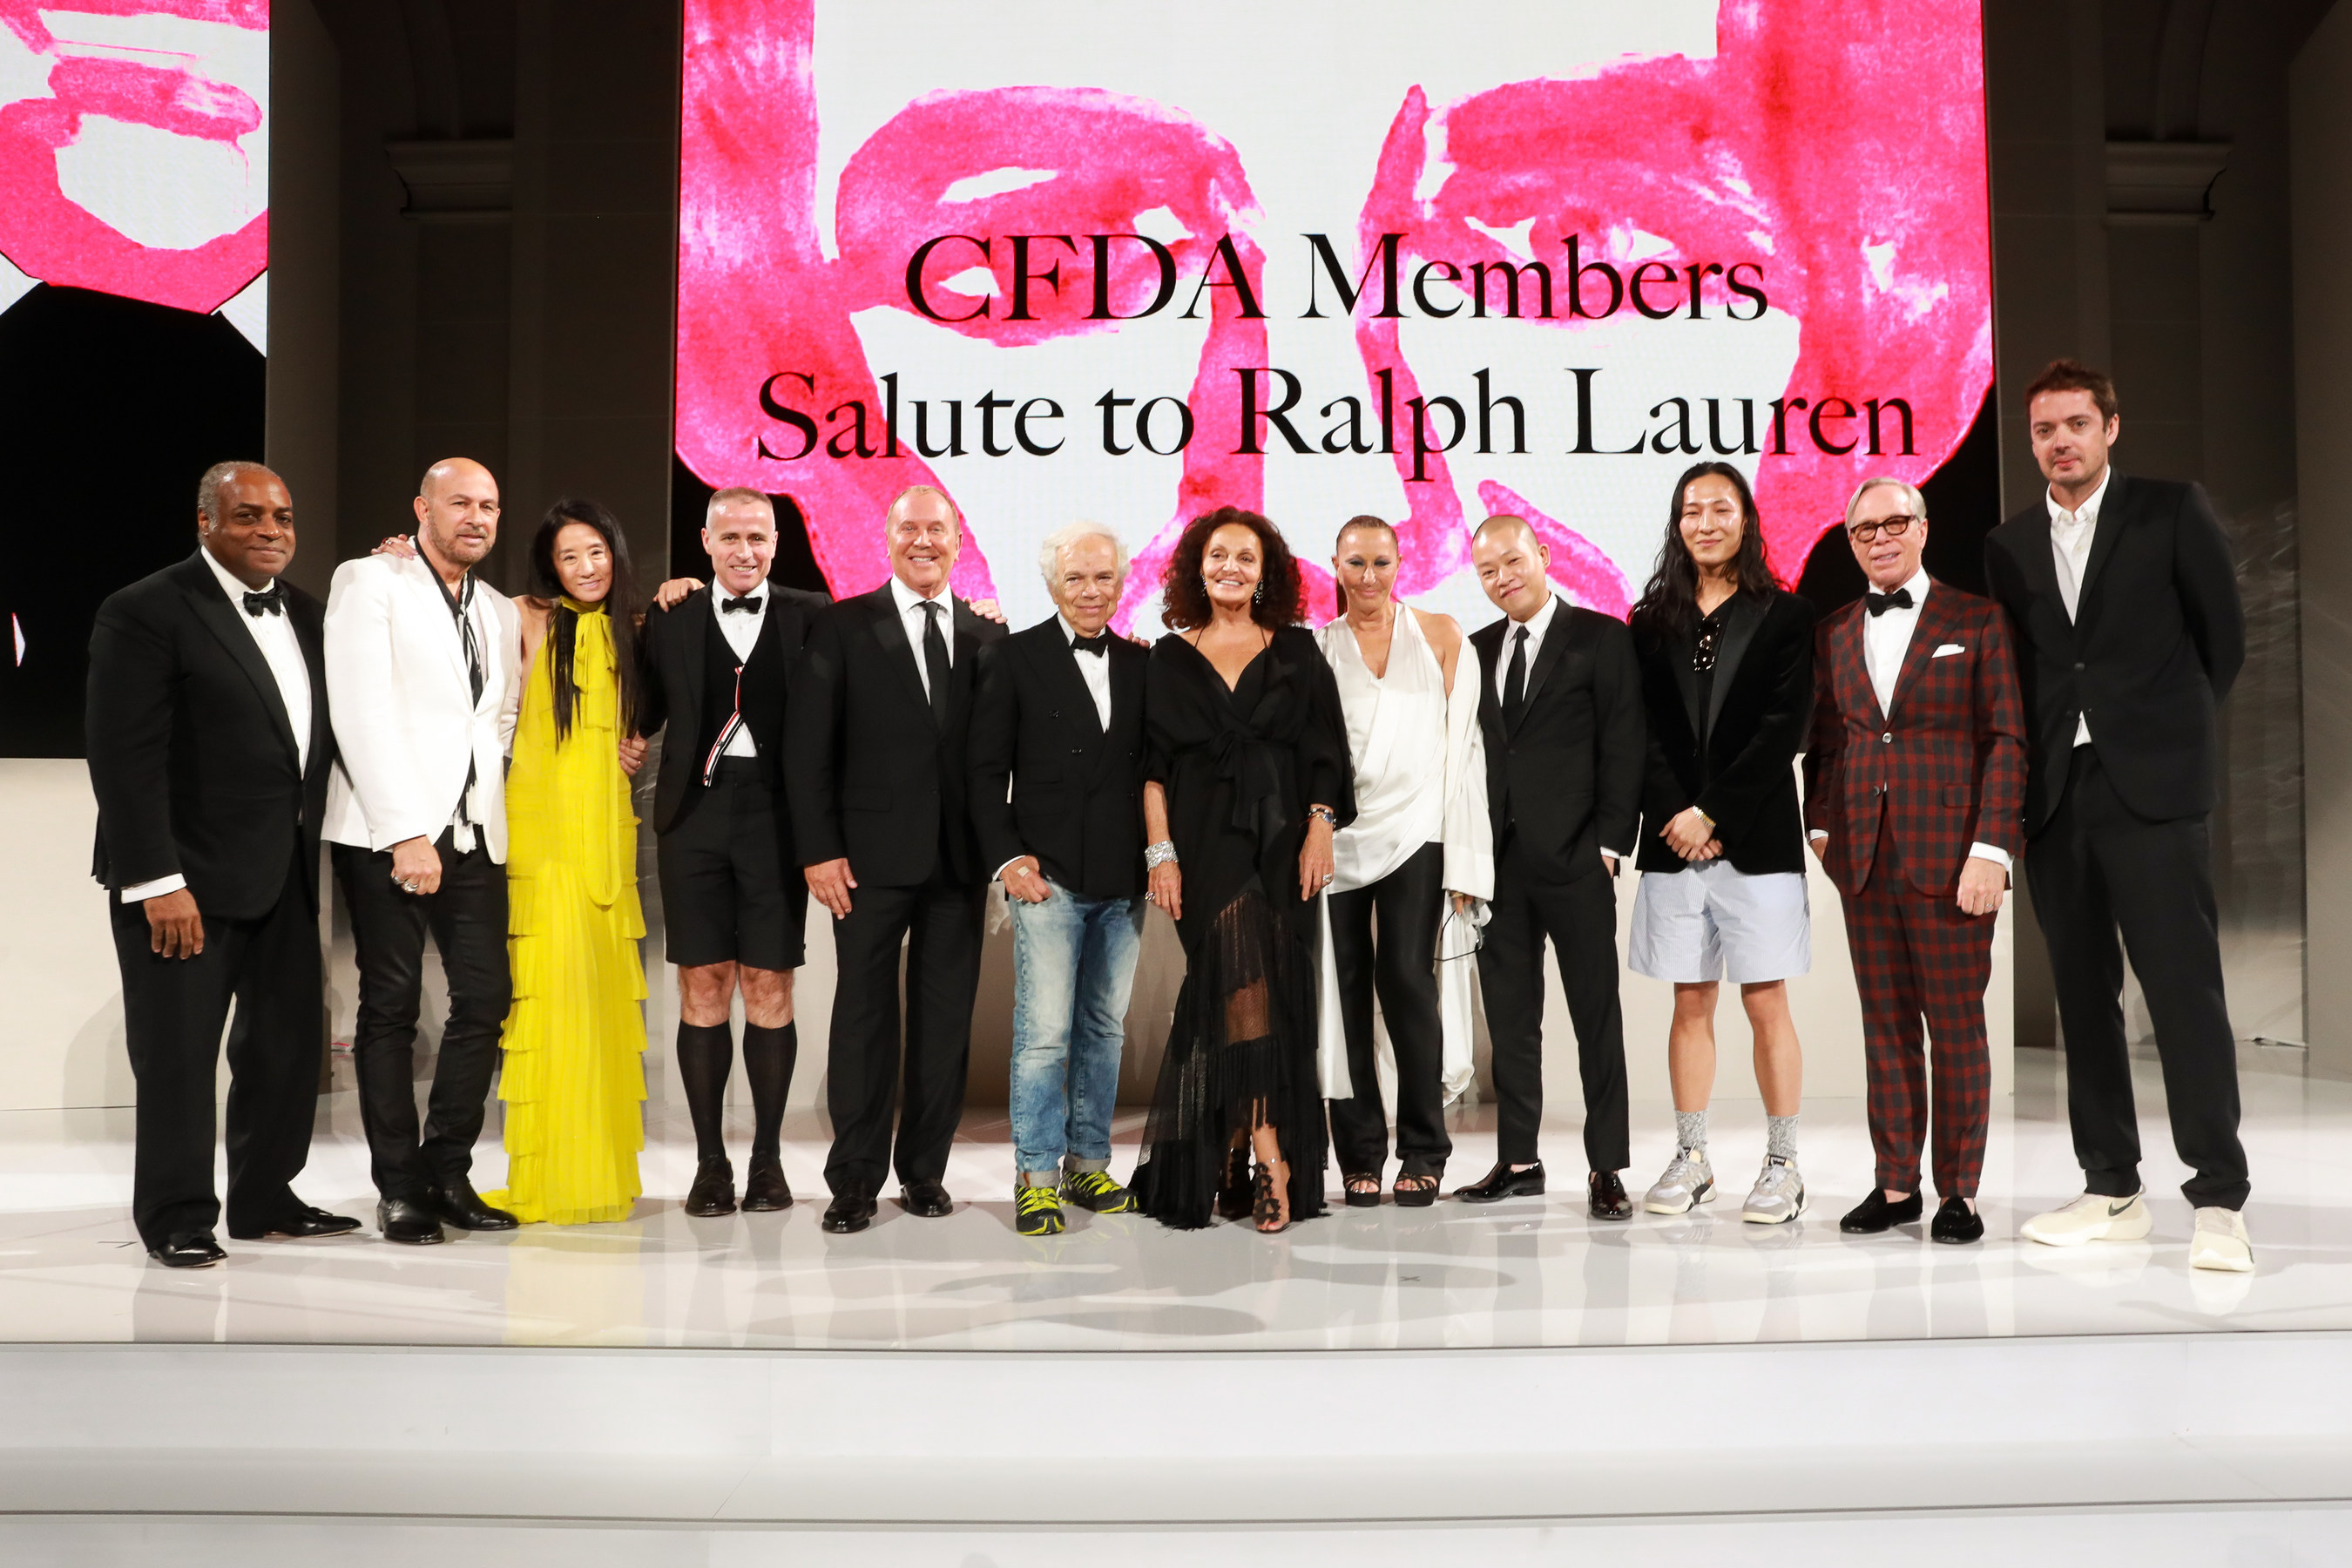 2018 Cfda Fashion Awards Winners Donatella Versace Ralph Lauren More Honored Latf Usa